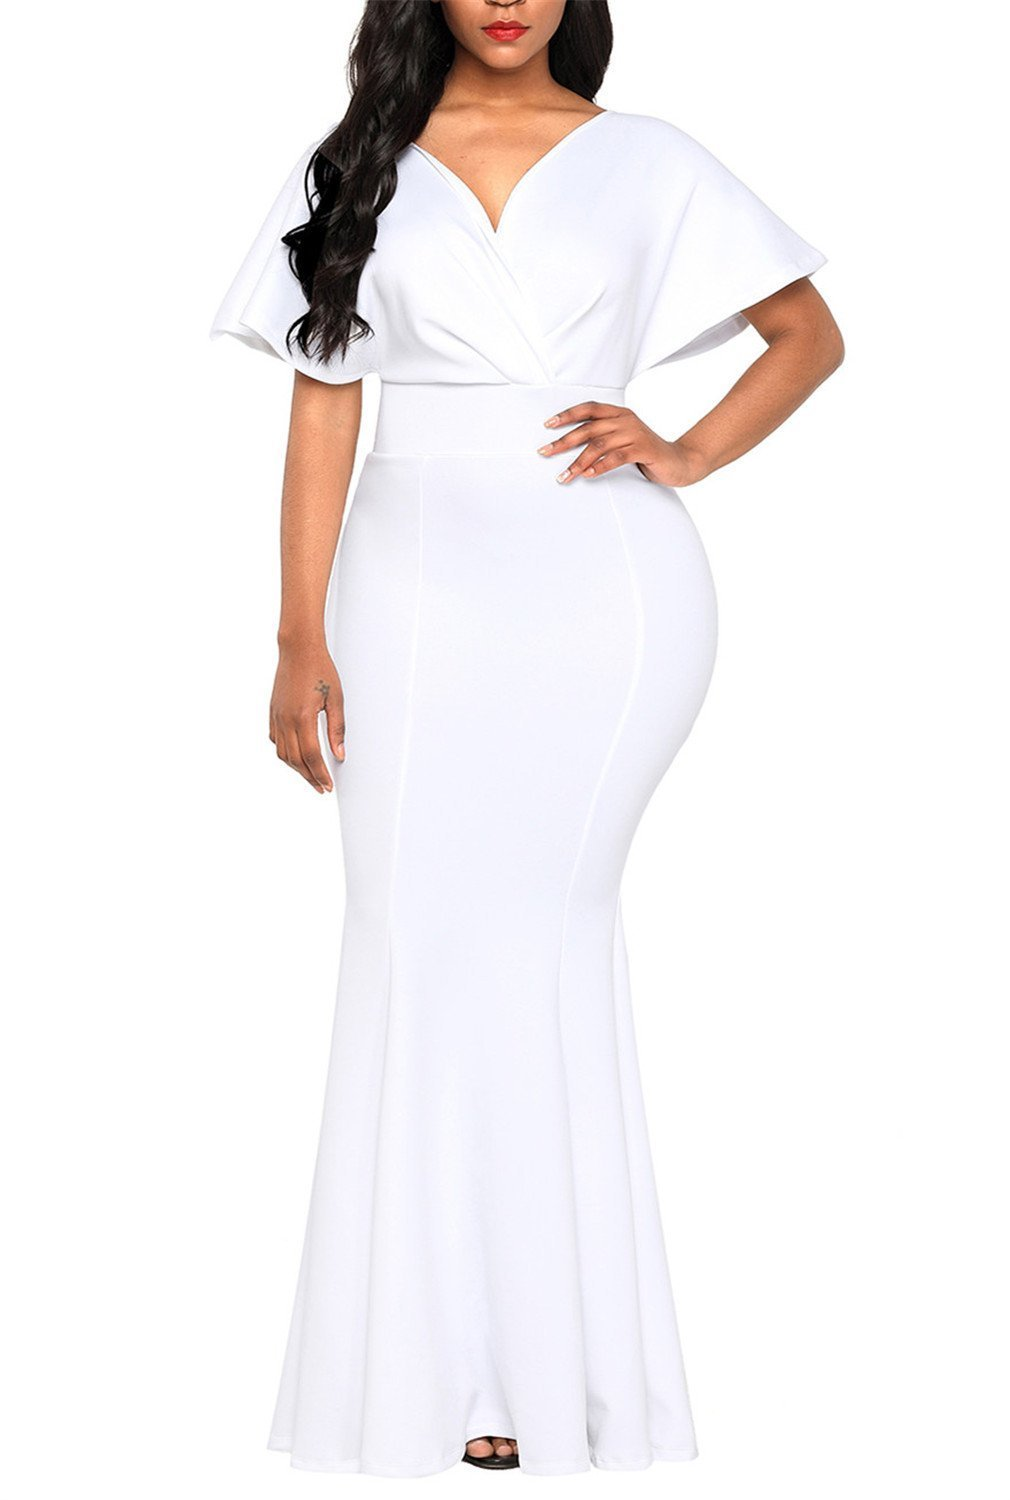 Dokotoo Womens Special Occasion Off Shoulder Short Sleeve V Neck High Waist Fishtail Evening Formal Gowns Maxi Prom Dress for Party Cocktail White